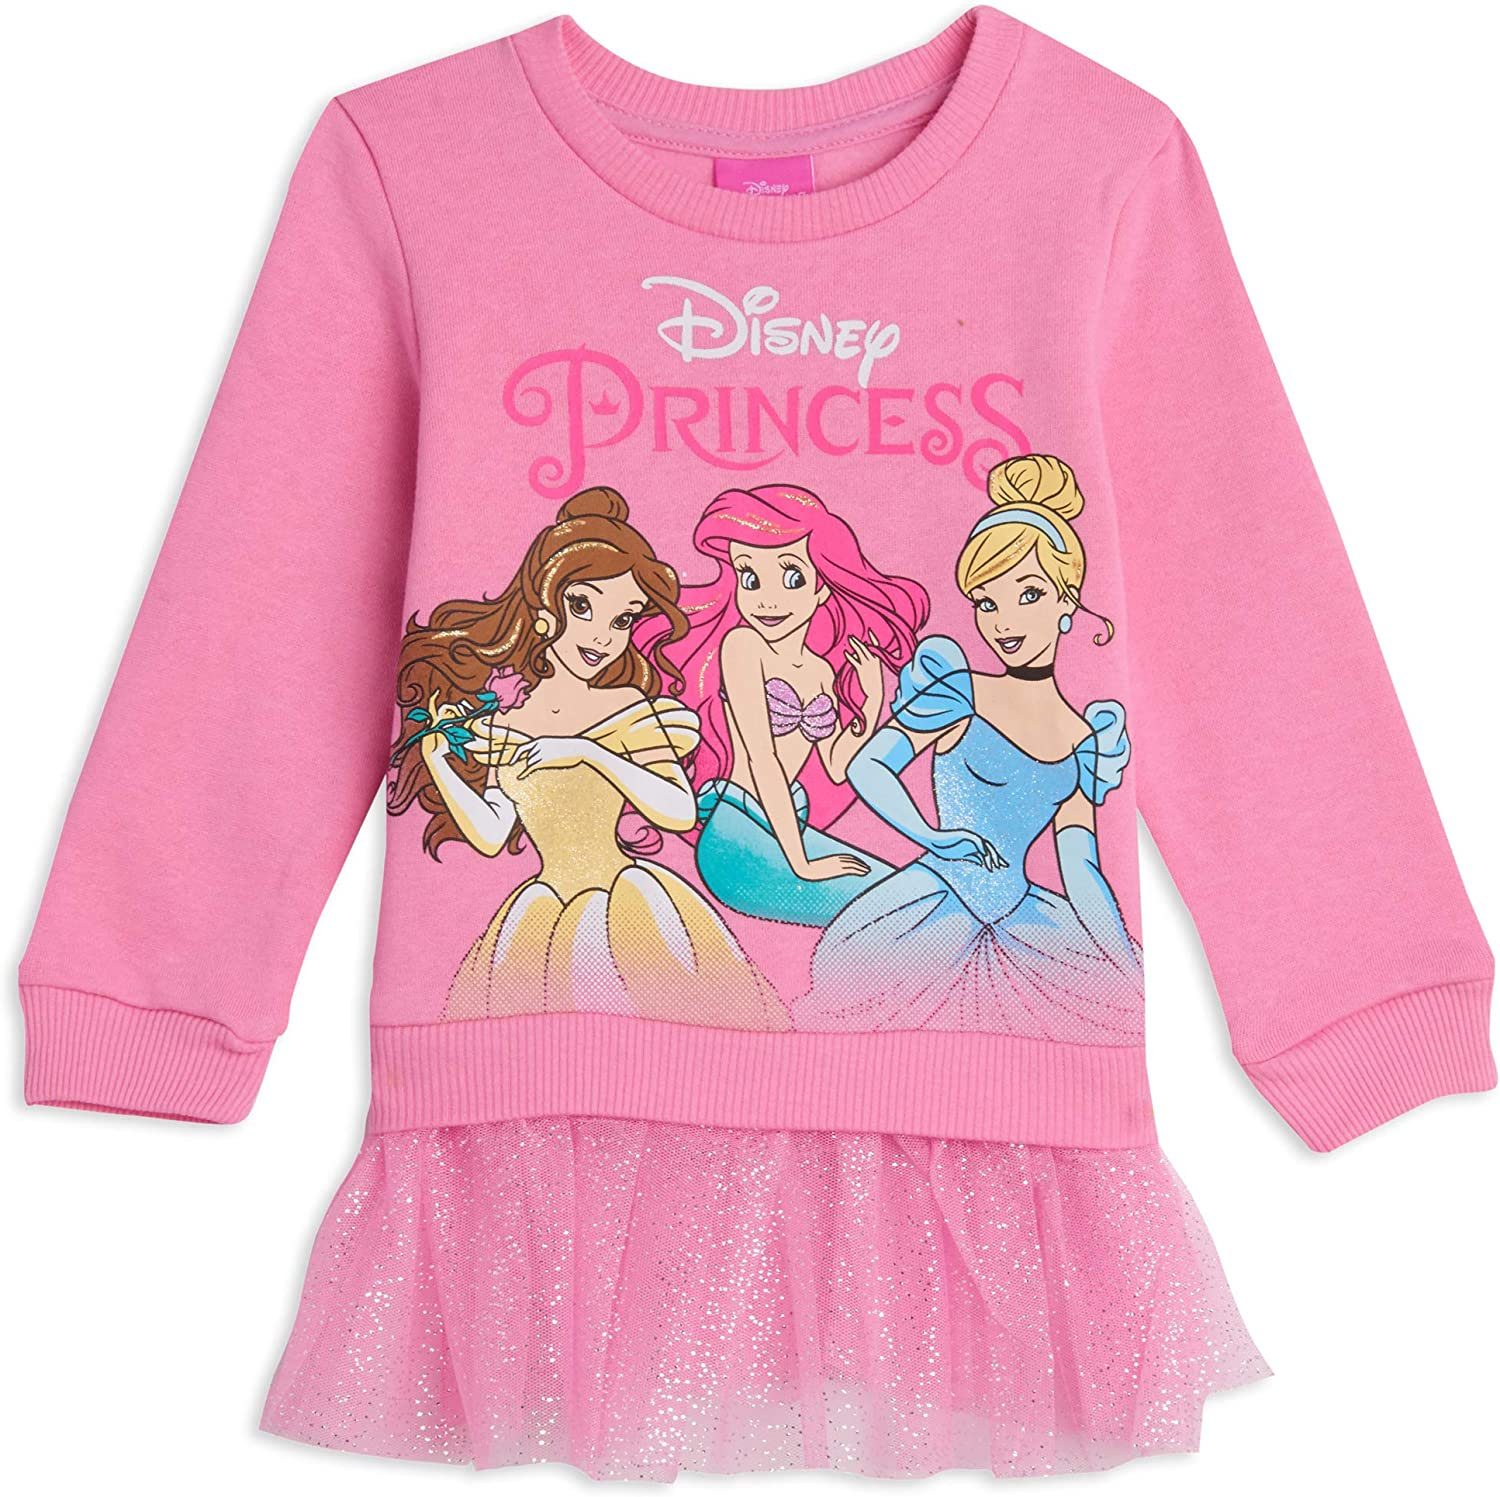 Disney Princesses Pullover Fleece with Tulle Ruffles Pink: Clothing, Shoes & Jewelry